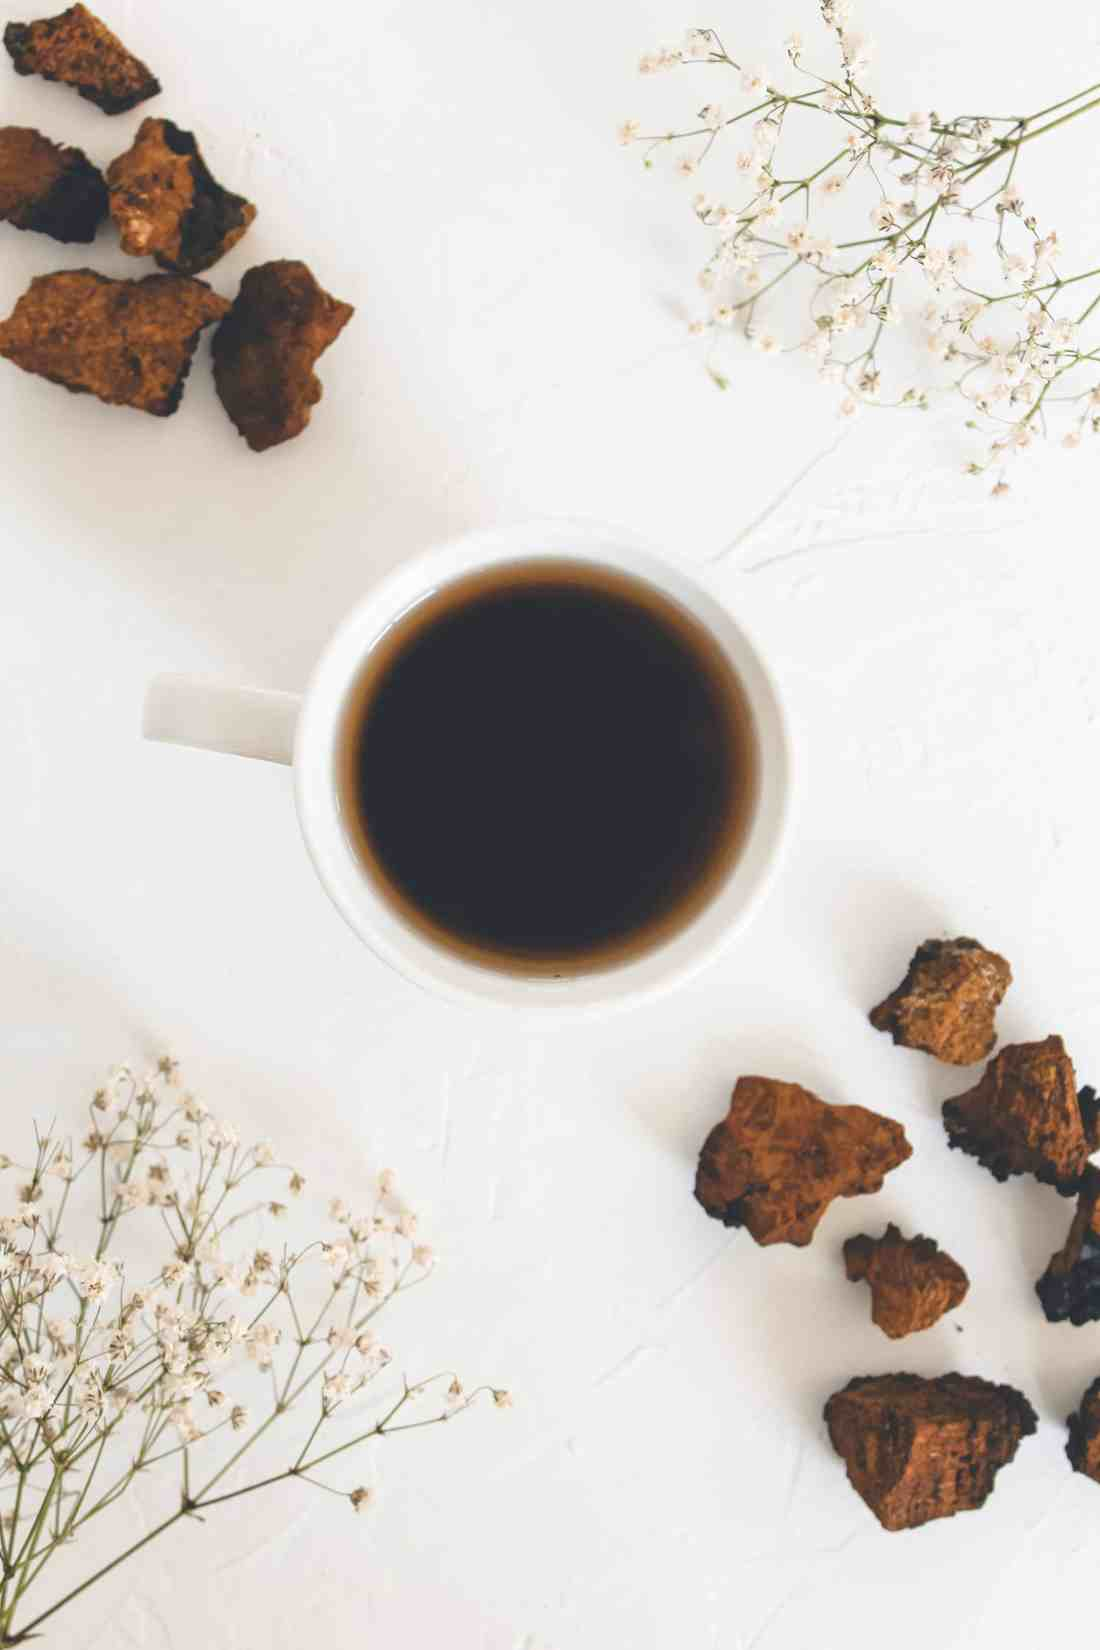 Chaga has been used for centuries due to its mass healing capabilities. Learn how to brew chaga tea, the many benefits of the chaga mushroom, & more!